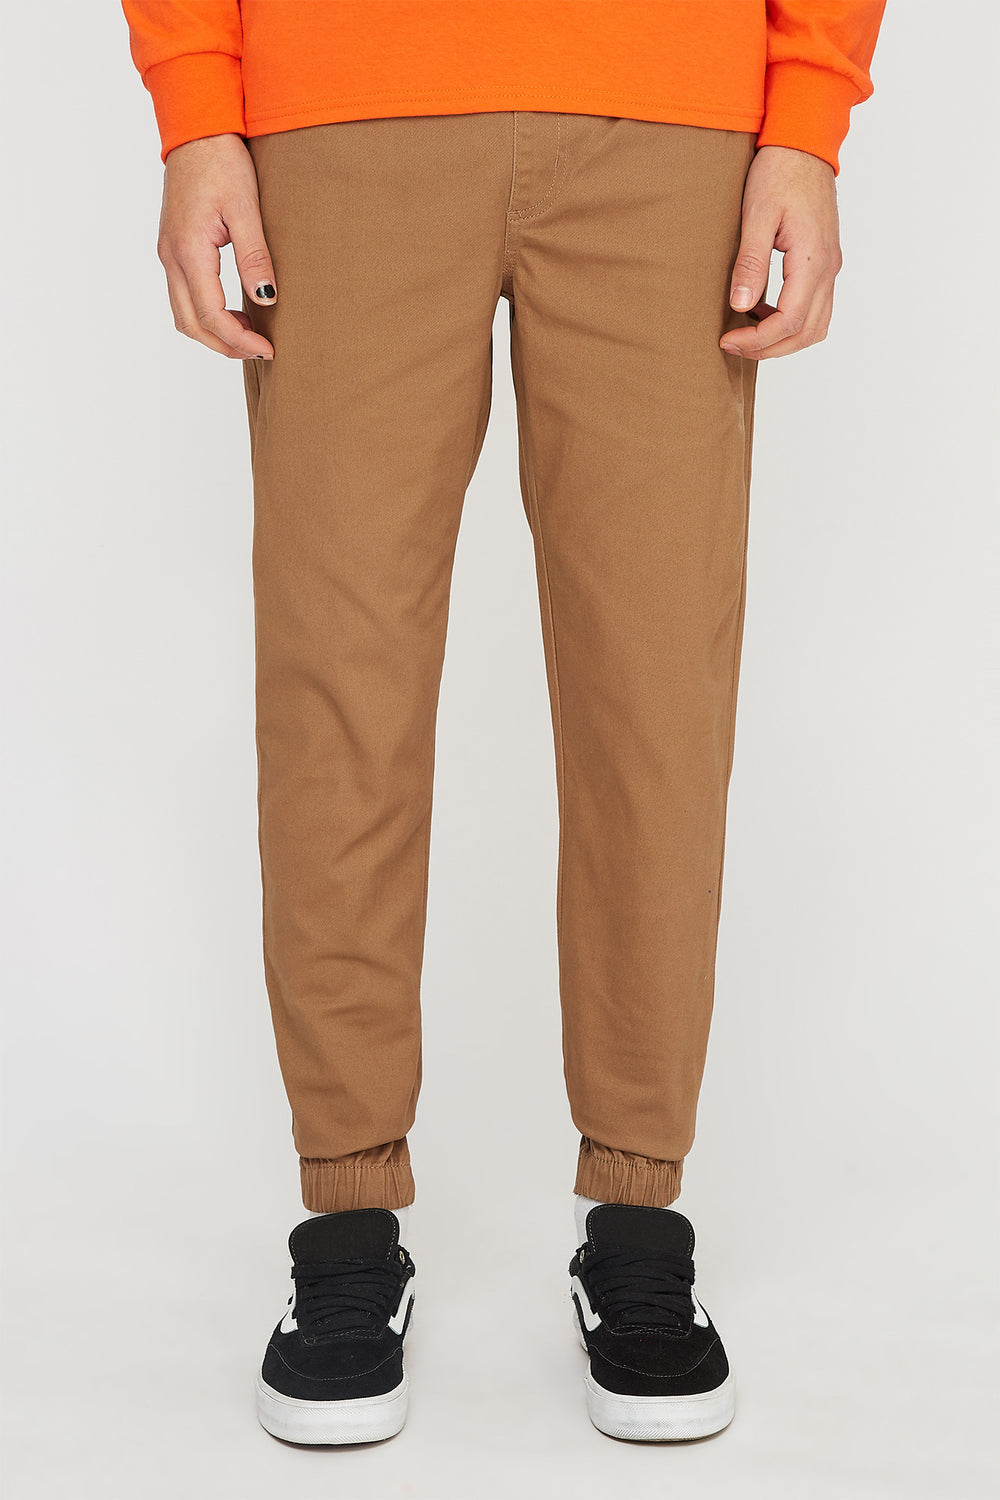 West49 Mens Solid Twill Jogger Camel